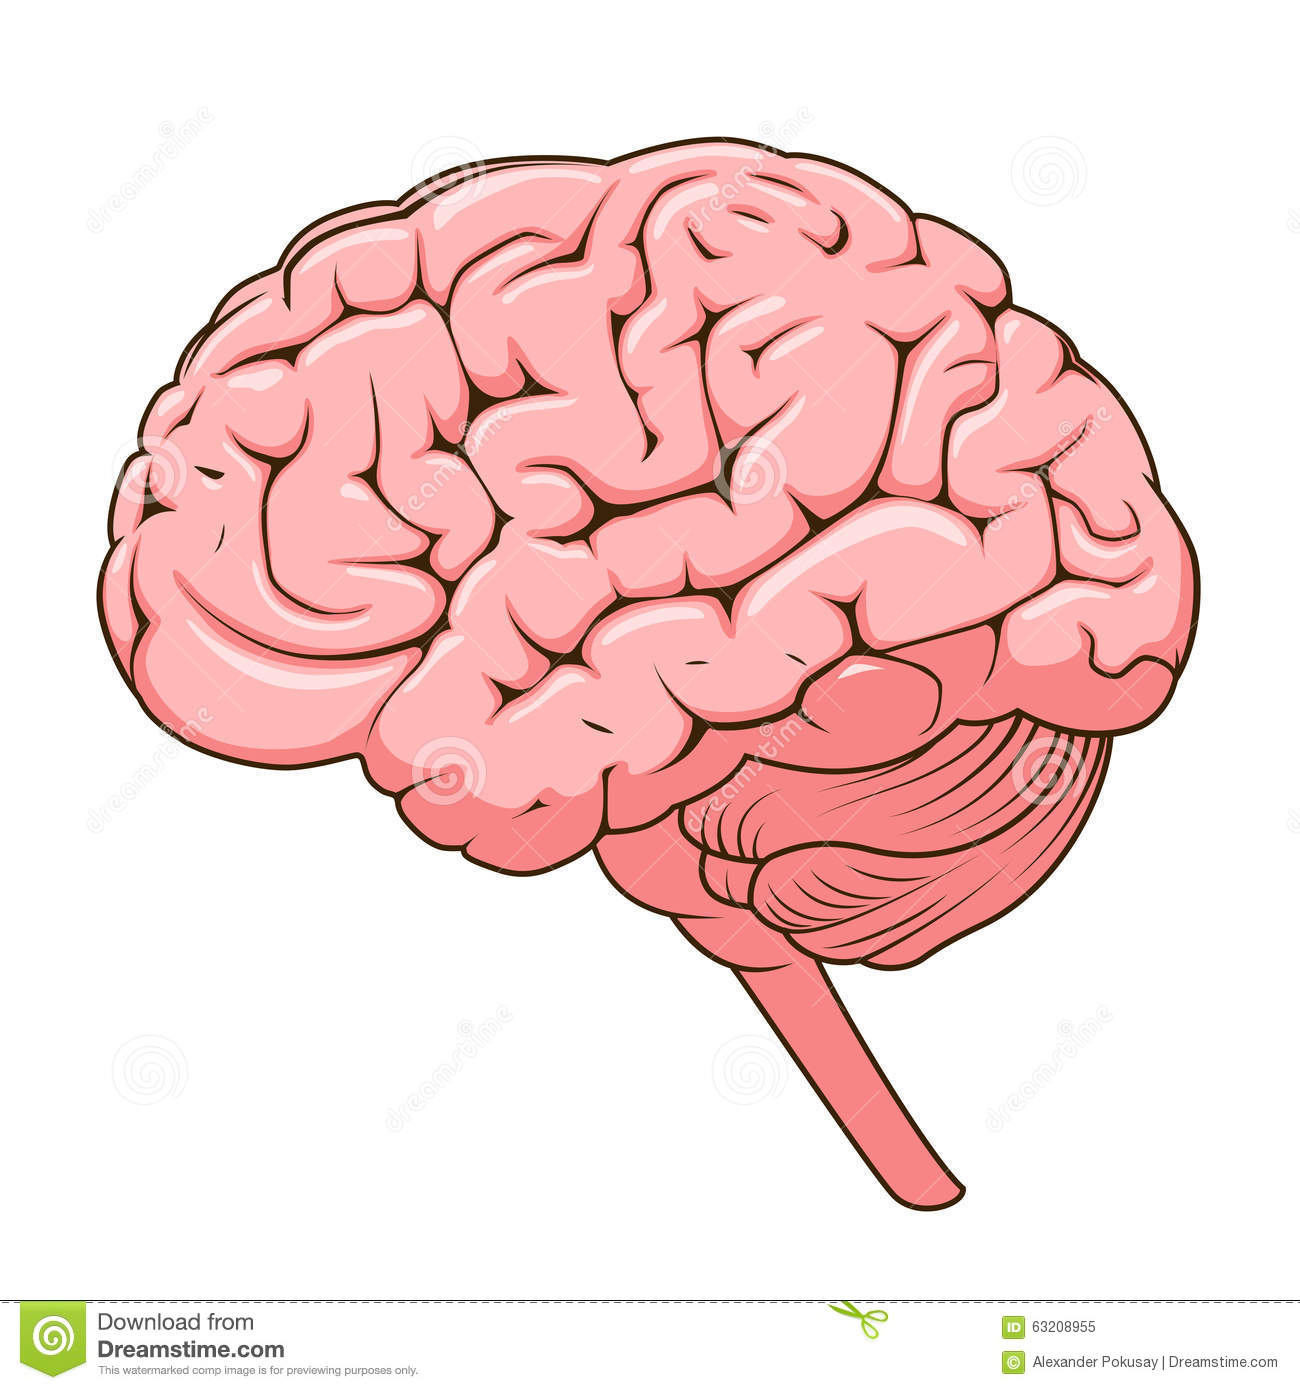 Structure Human Brain Schematic Vector Illustration Medical Science Educational Illustration on Wiring Harness Diagram Schematics Free Download On